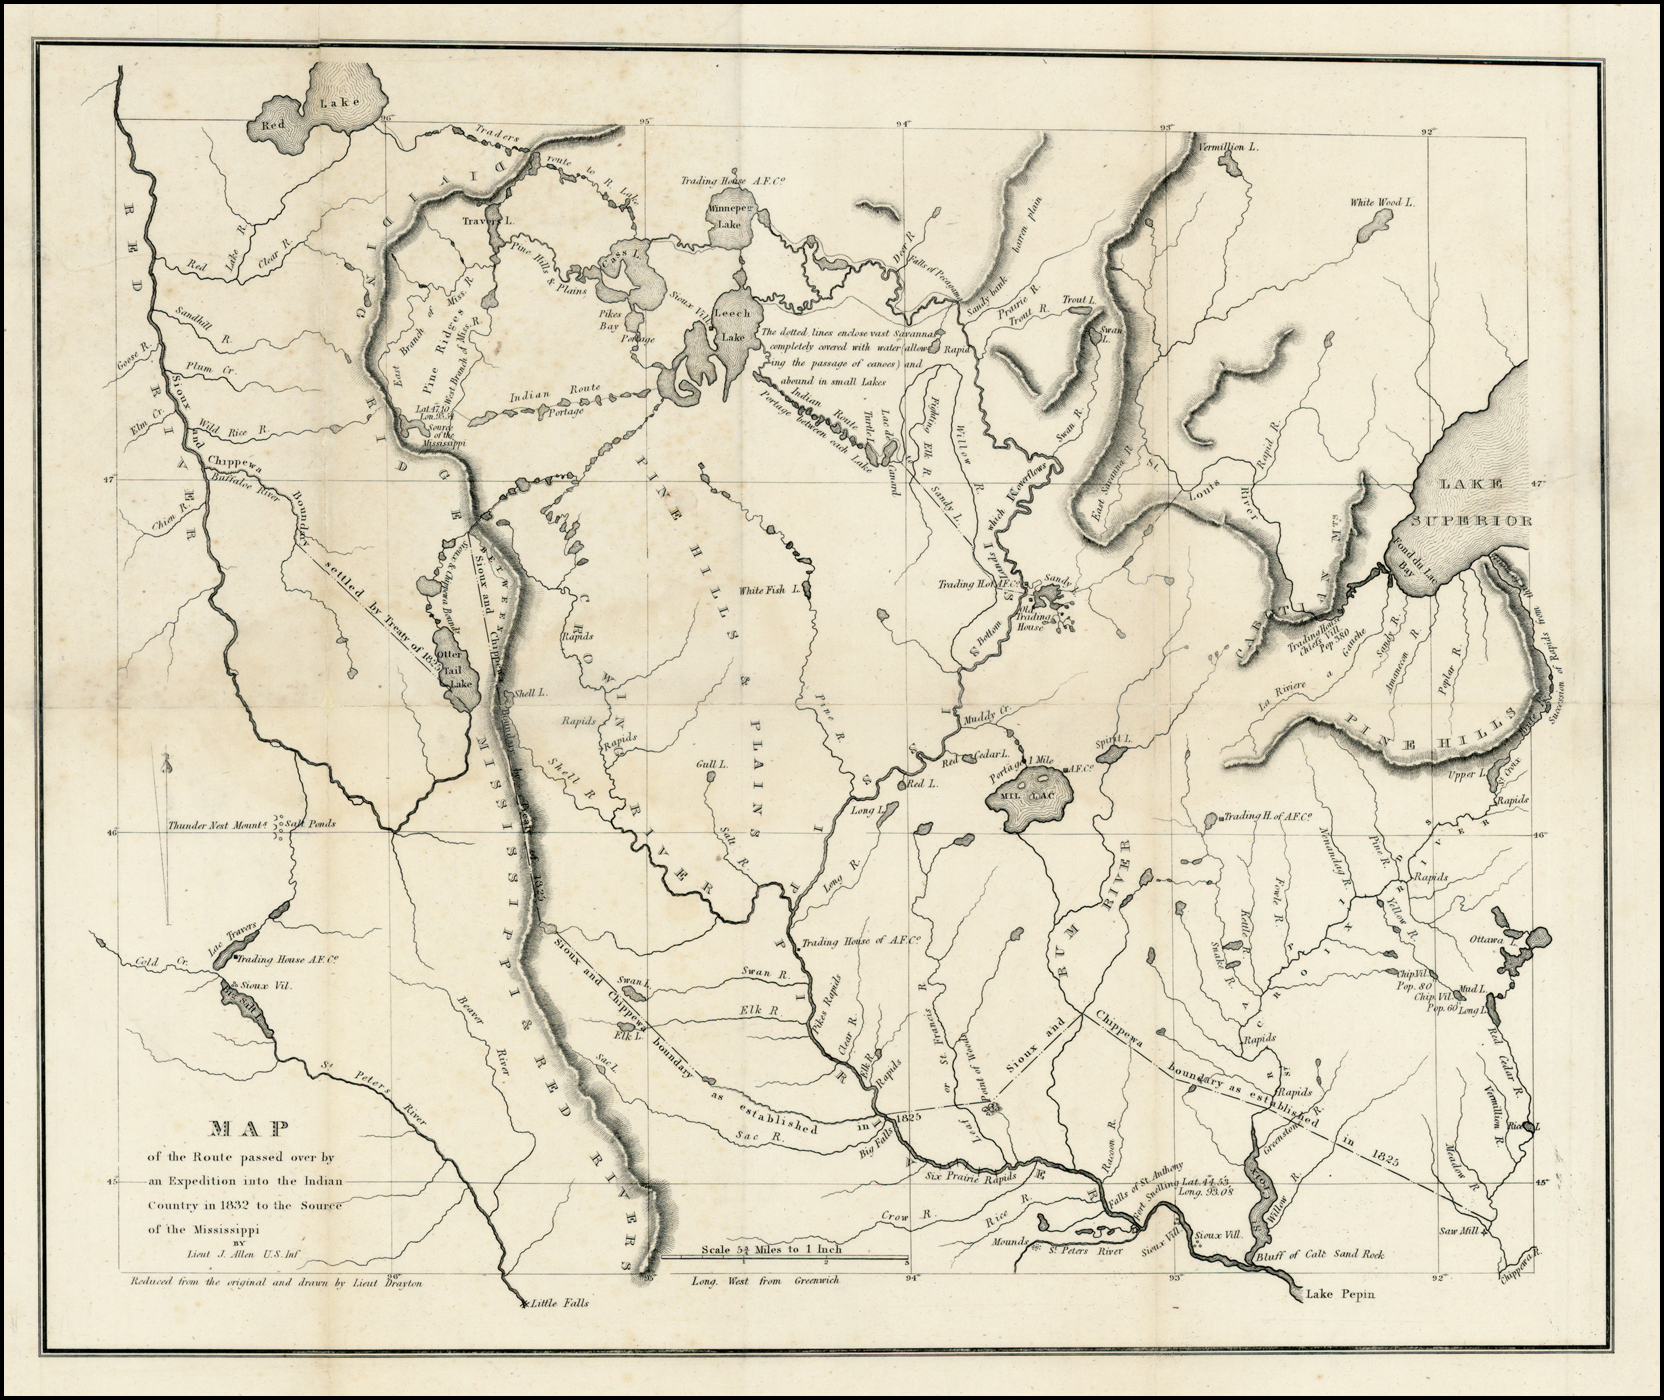 1832 Henry Schoolcraft map of lakes/rivers origin of Mississippi River